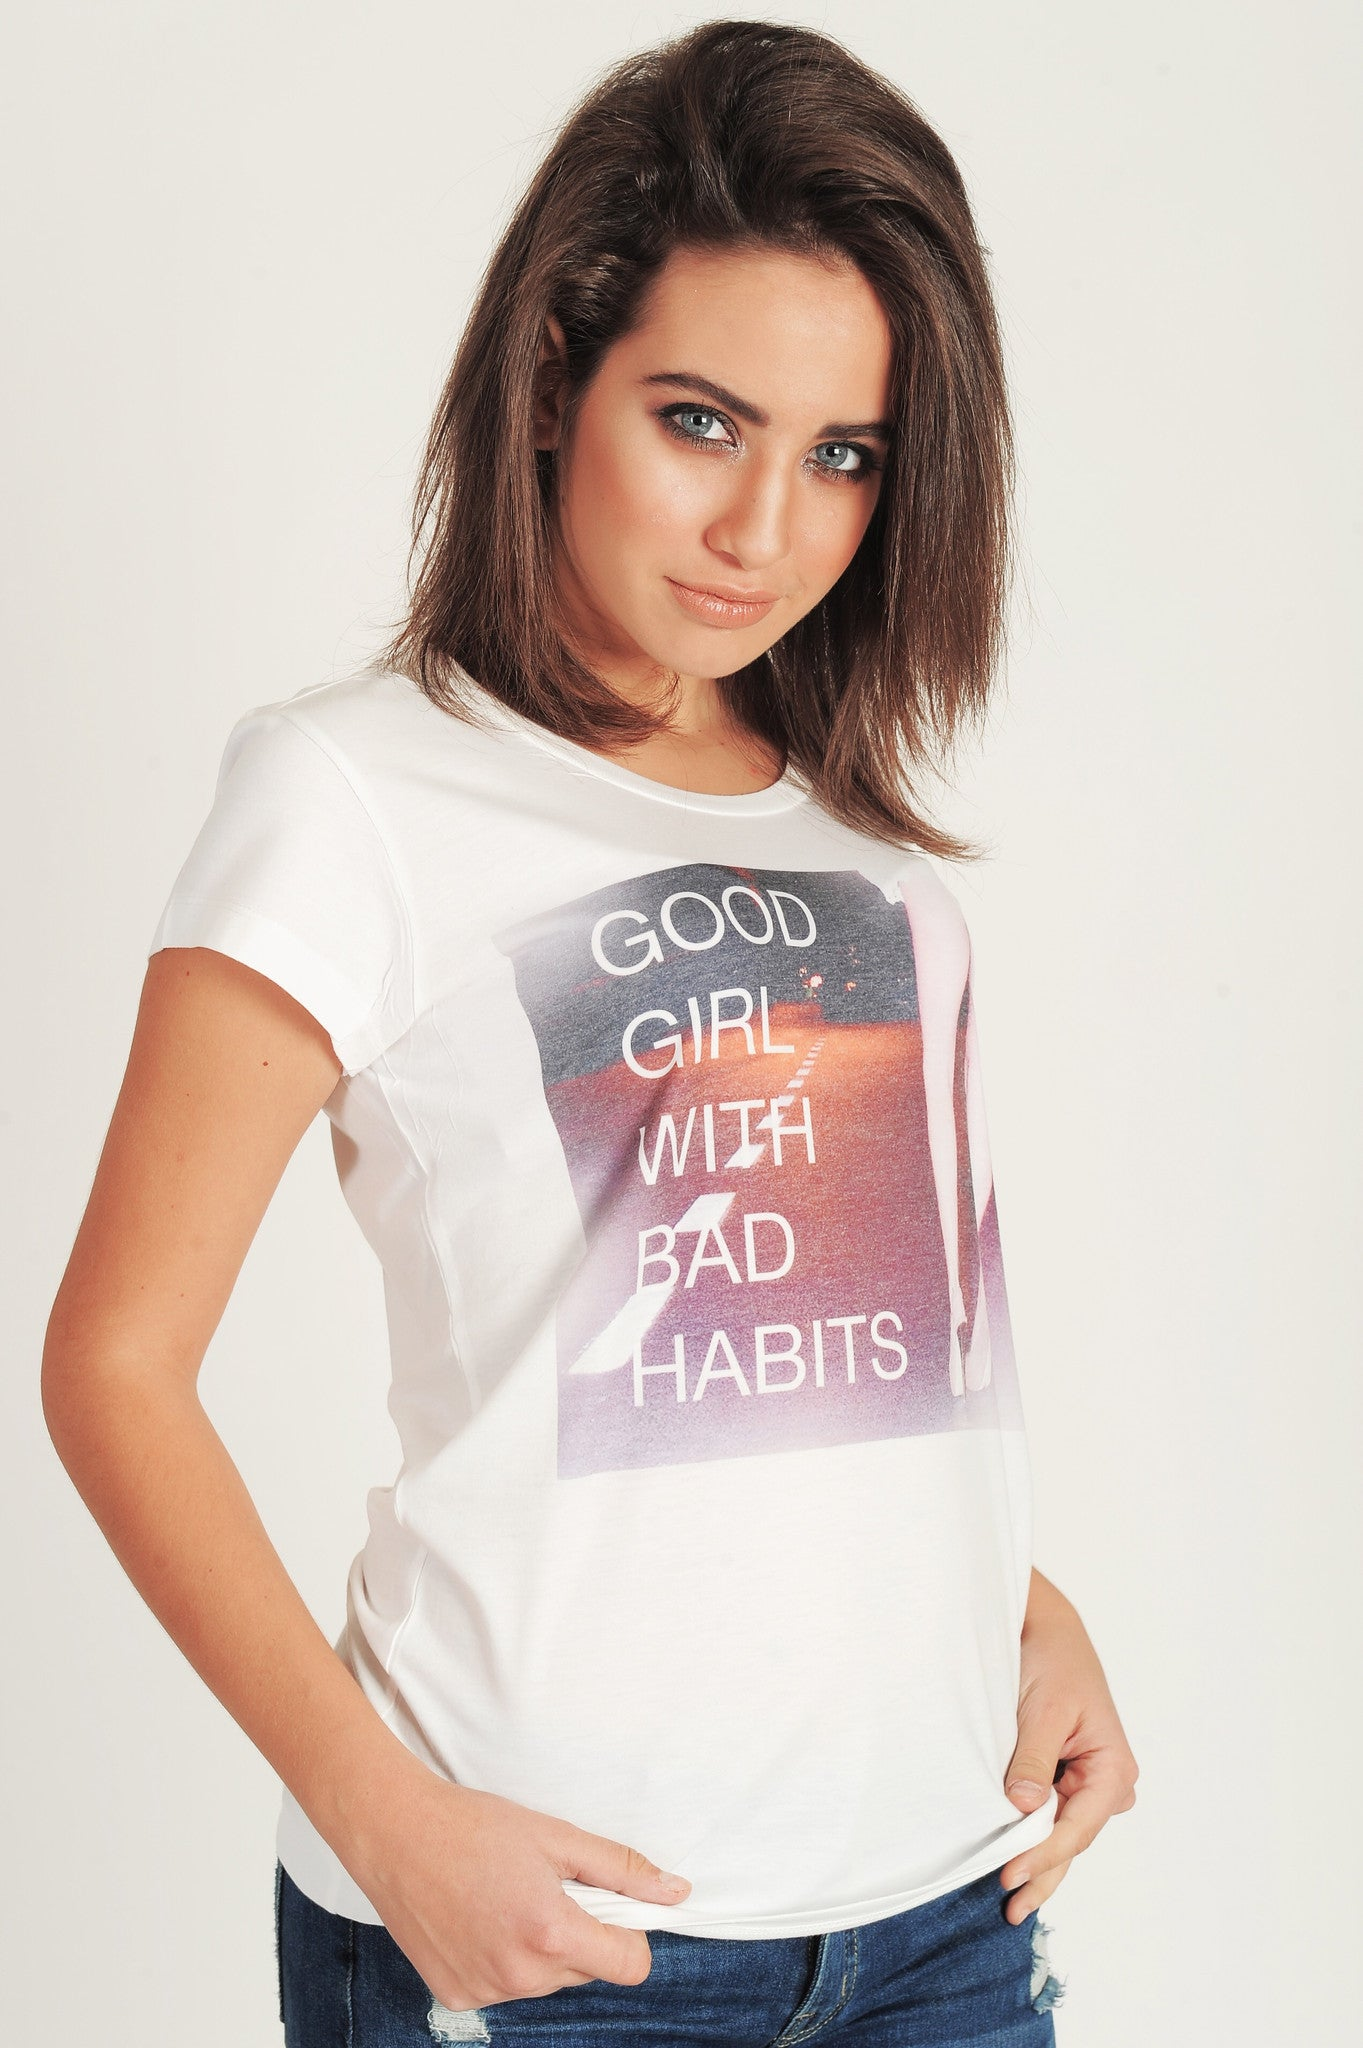 Good girls with bad habits.